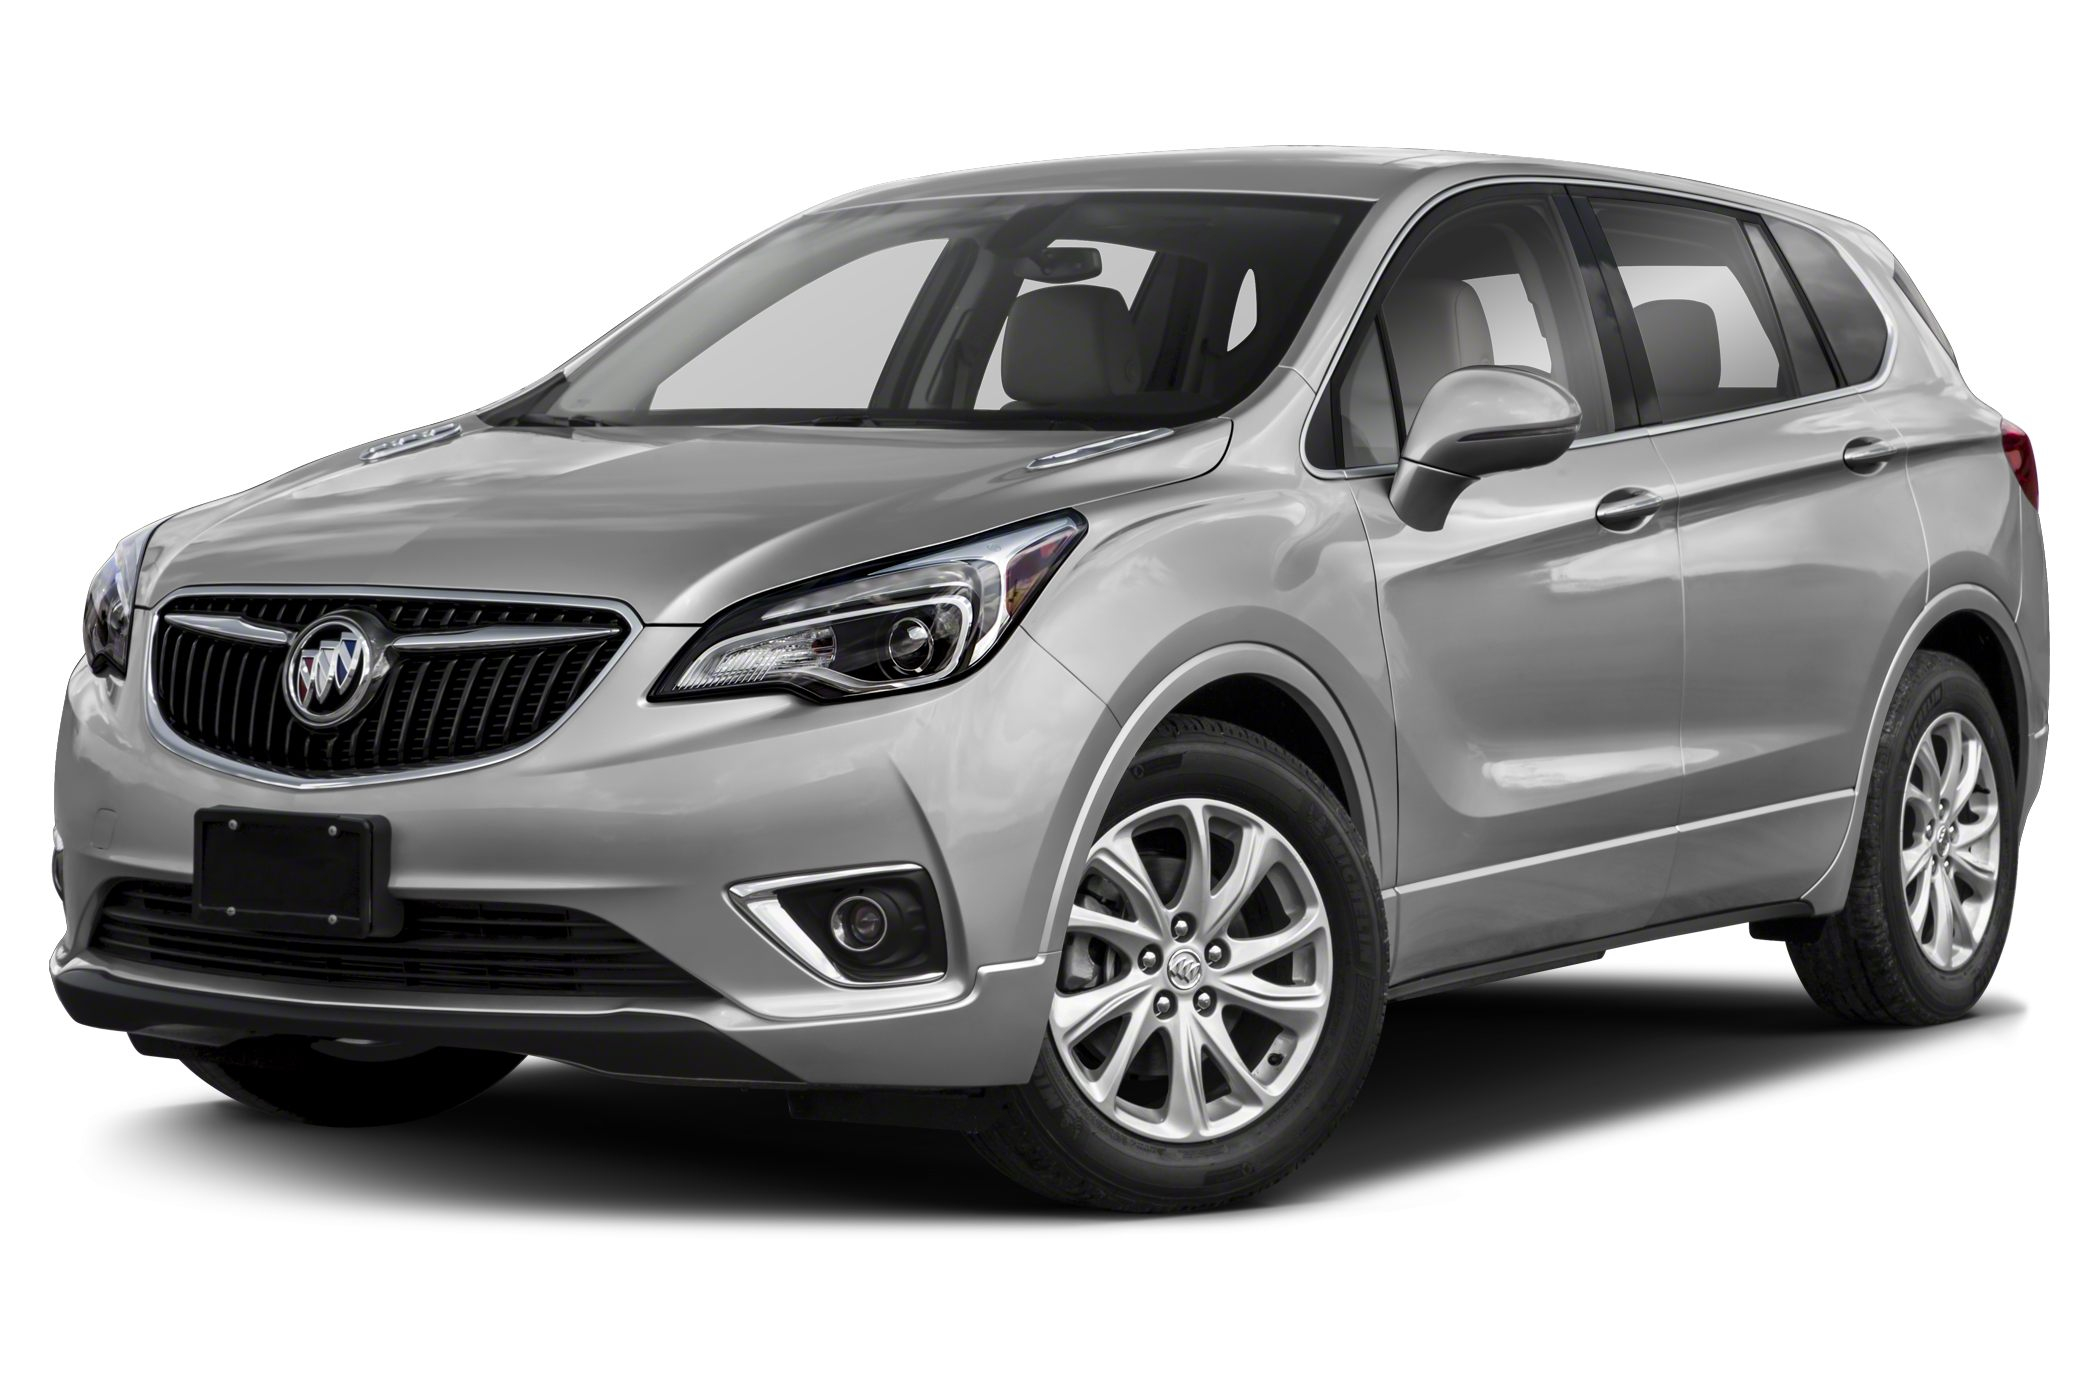 2019 Buick Envision Crash Test Ratings New 2021 Buick Envision Reliability, Seat Covers, Safety Rating